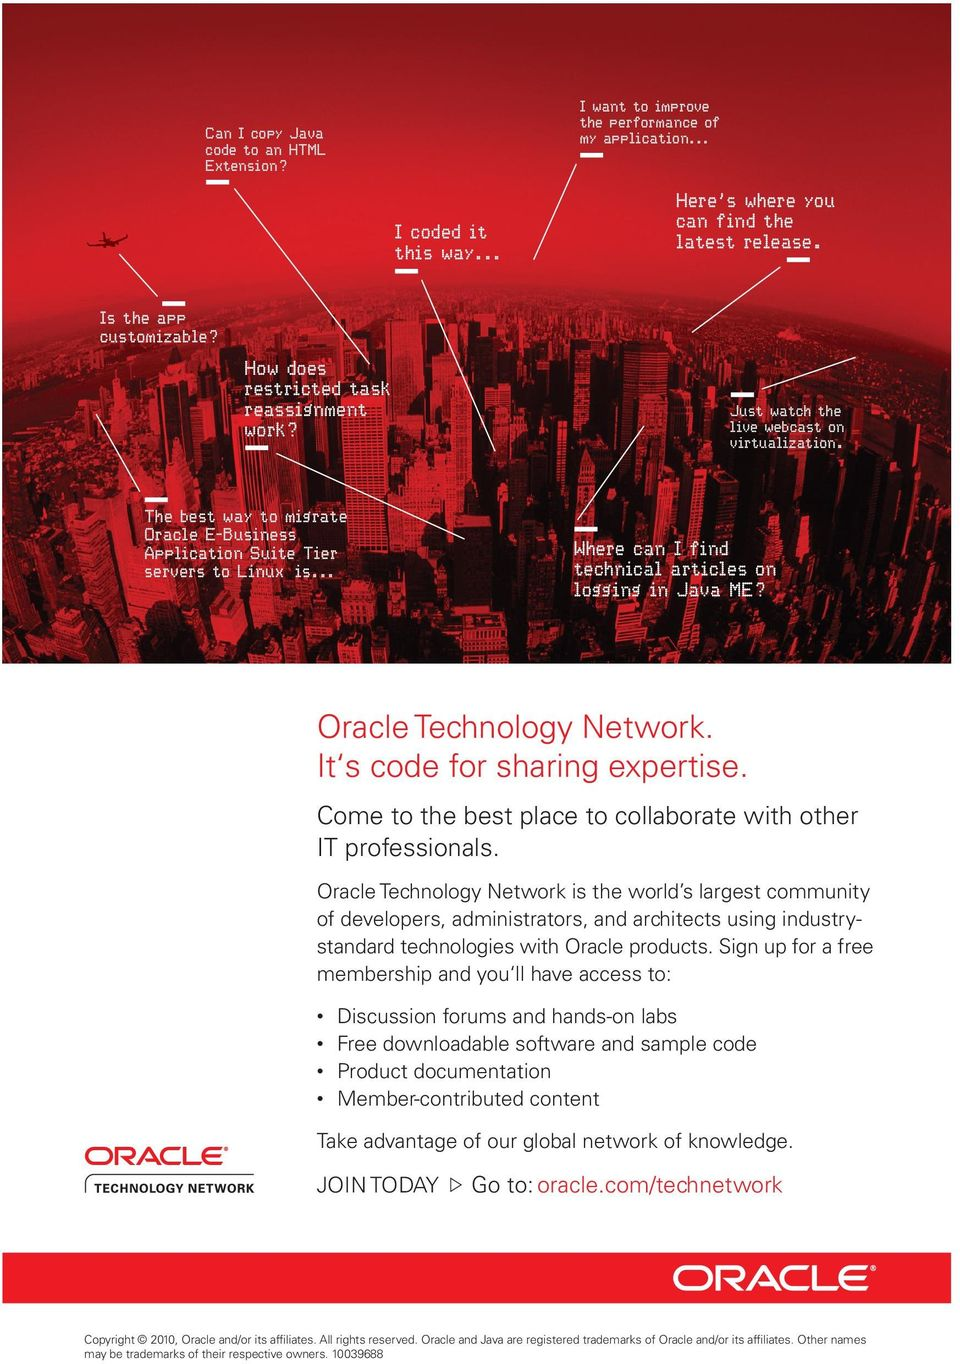 "CTVKENGU QP NQIIKPI KP -CXC 0("" Oracle Technology Network. It s code for sharing expertise. Come to the best place to collaborate with other IT professionals."